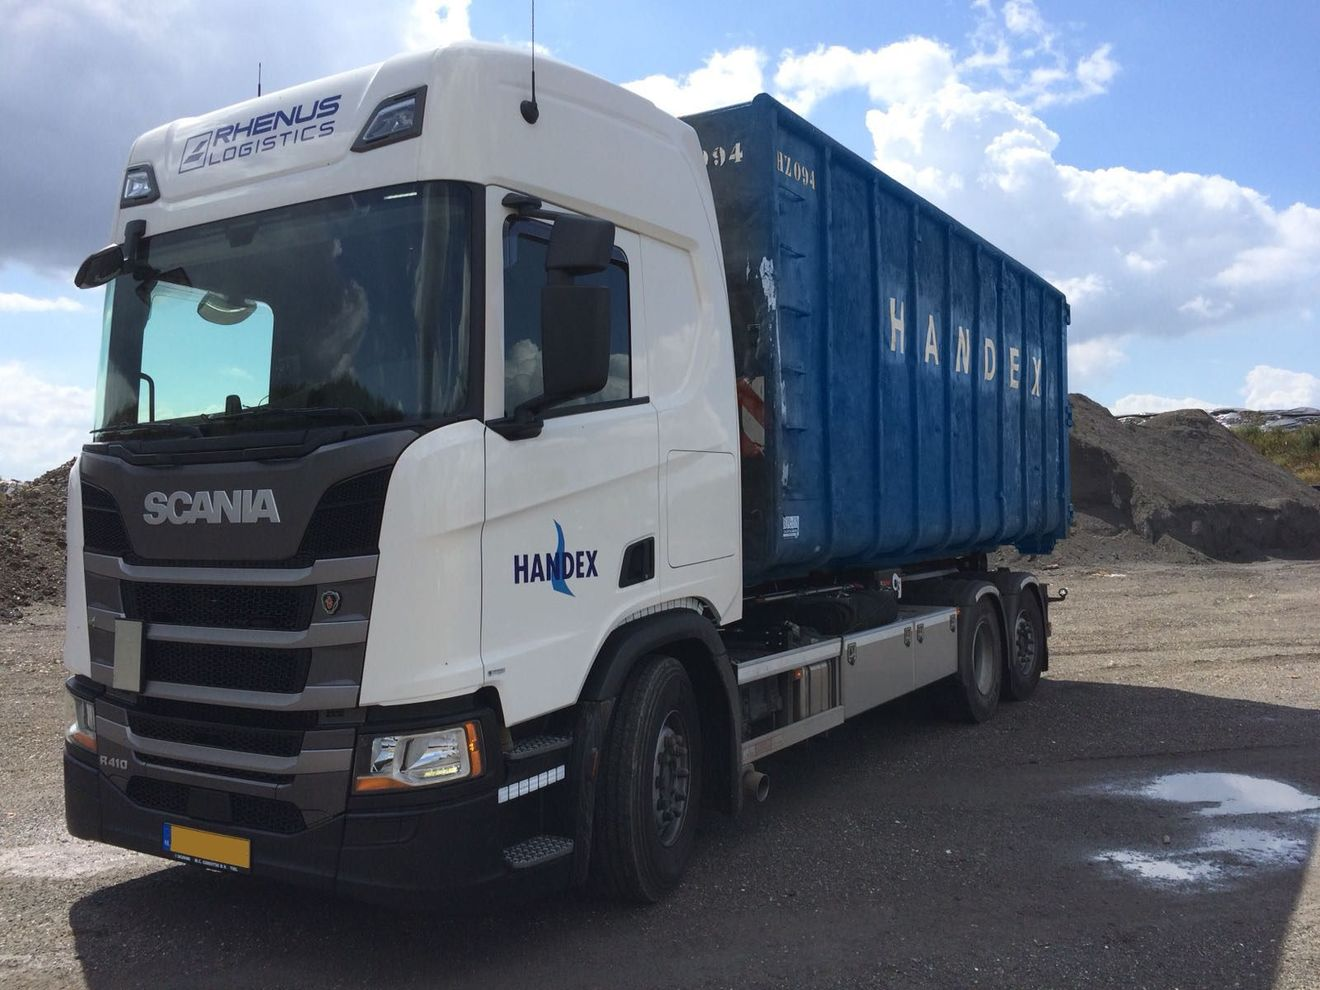 Recycling Bielefeld Waste Transport Recycling Logistics Rhenus Logistics